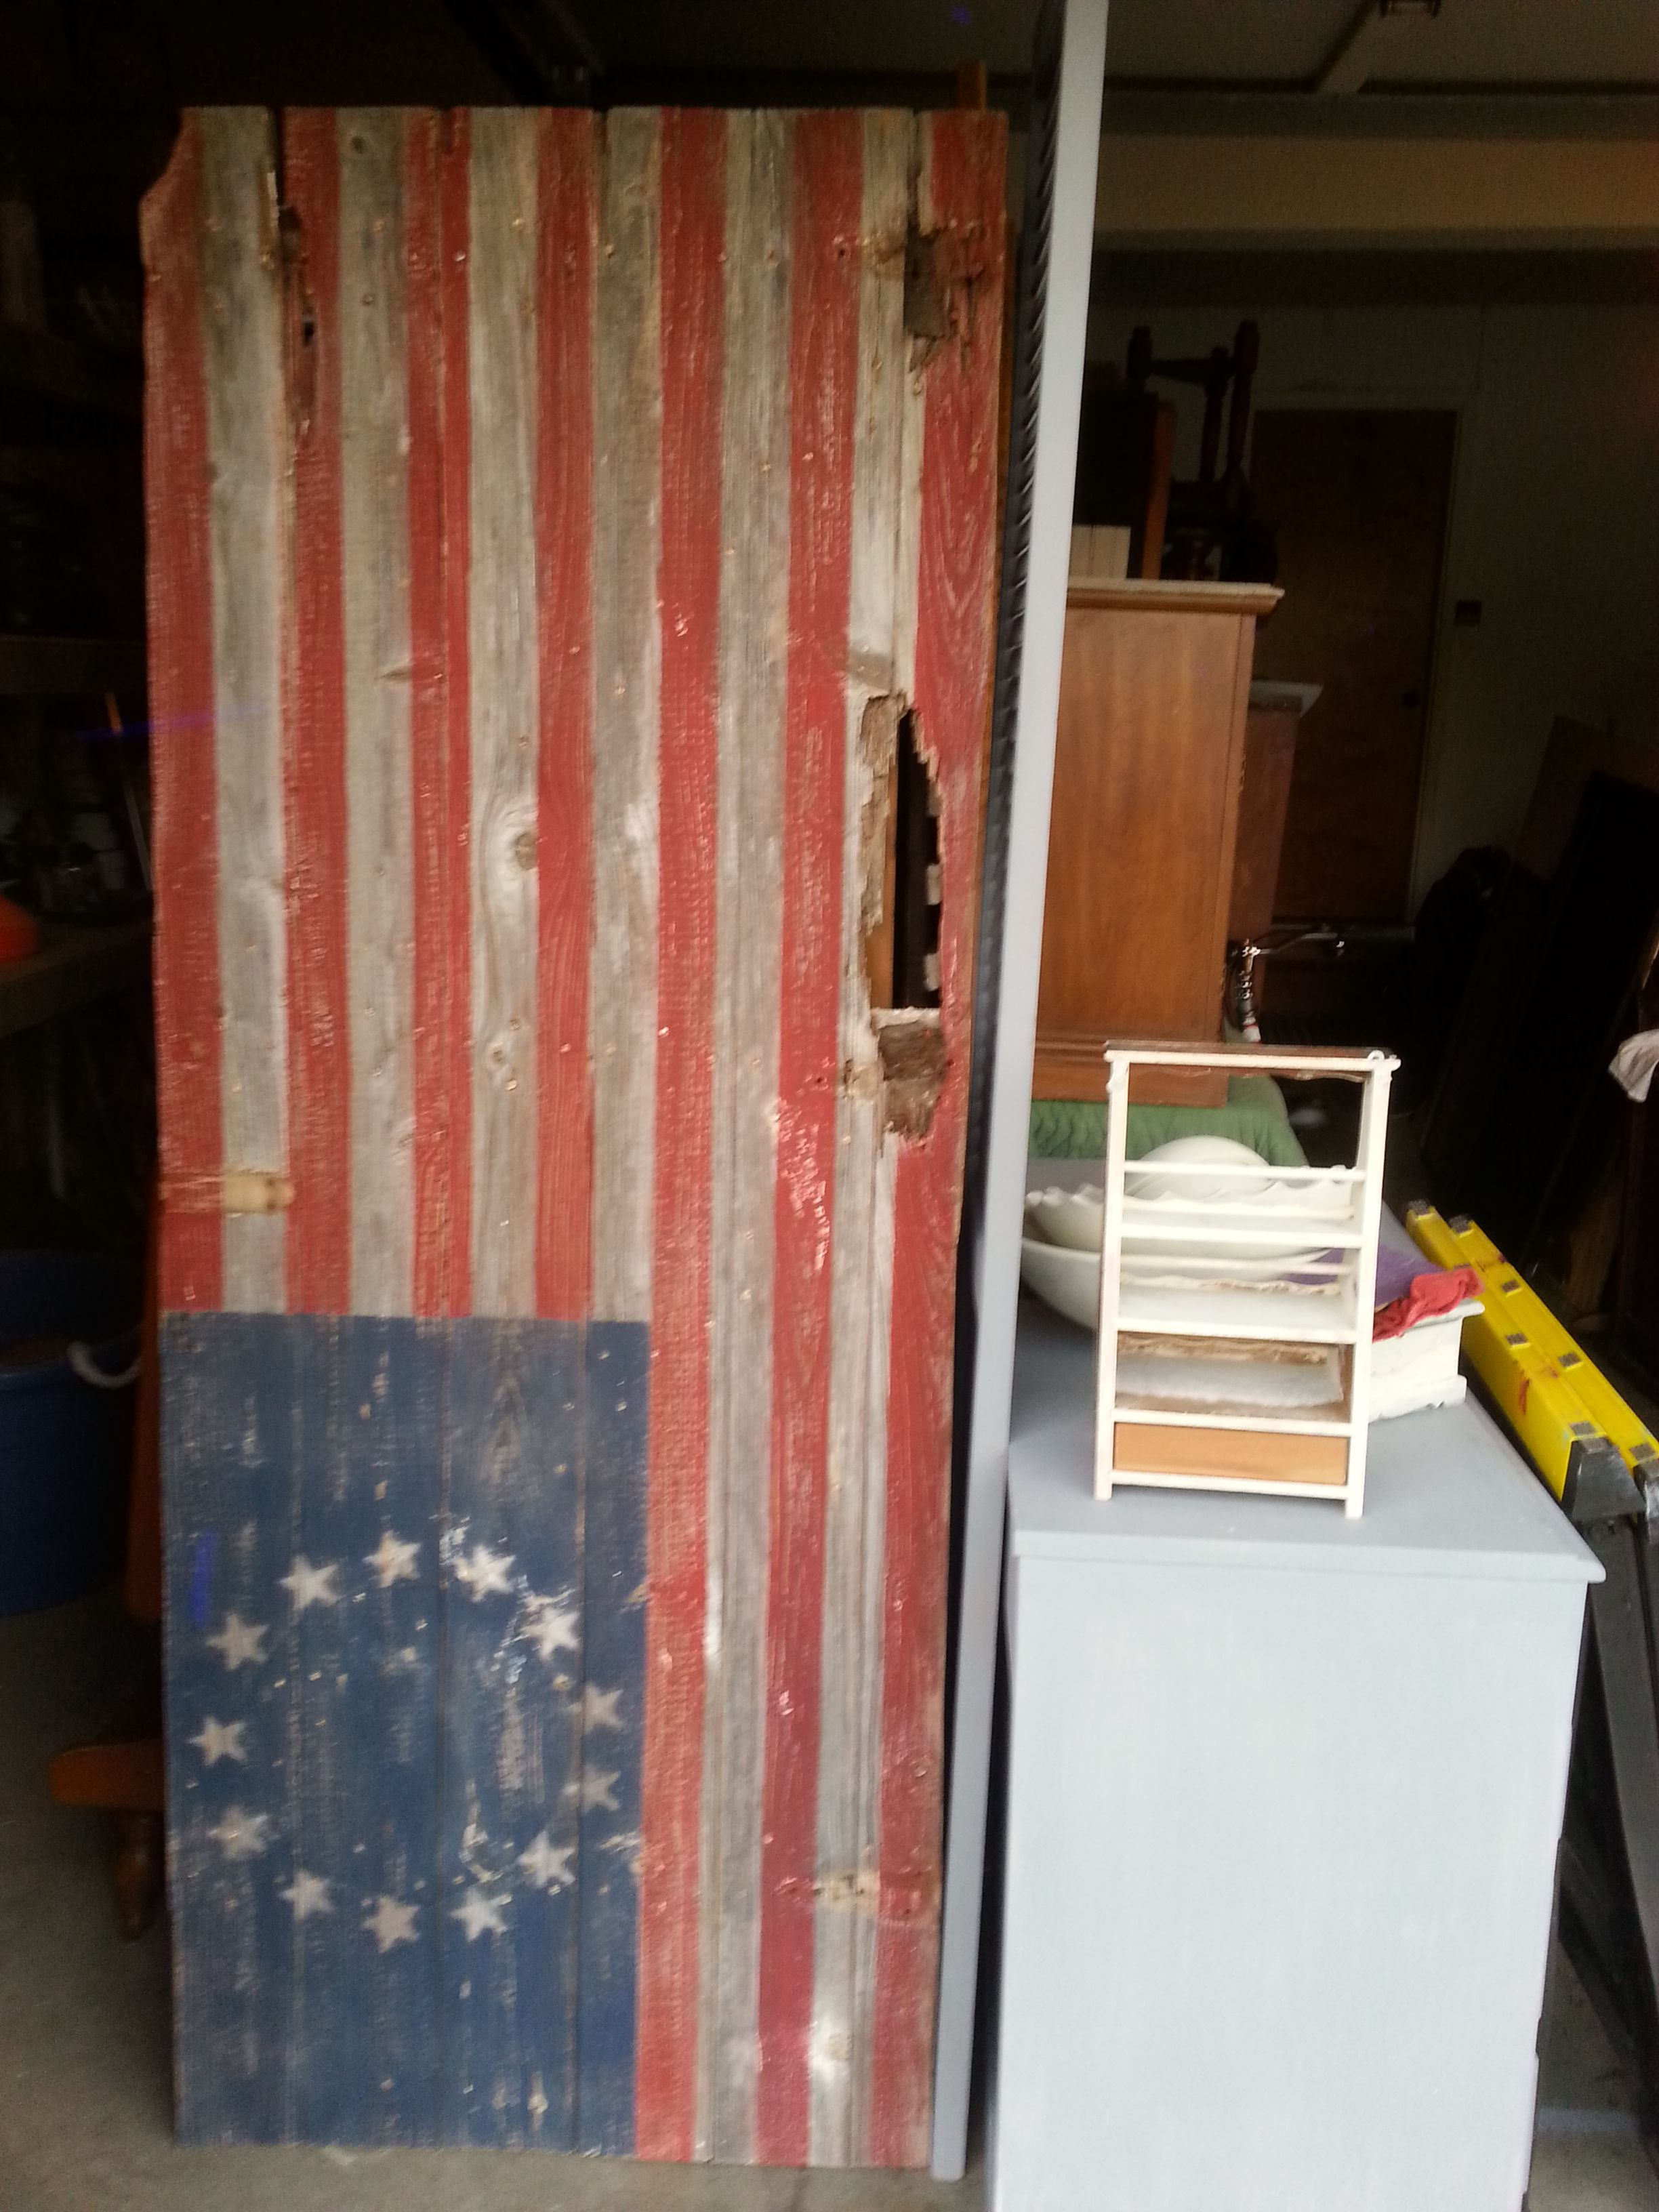 My Step Dad Jim Gave Me An Old Barn Door So I Painted An American Flag On It Old Barn Doors Distressed Furniture Old Doors